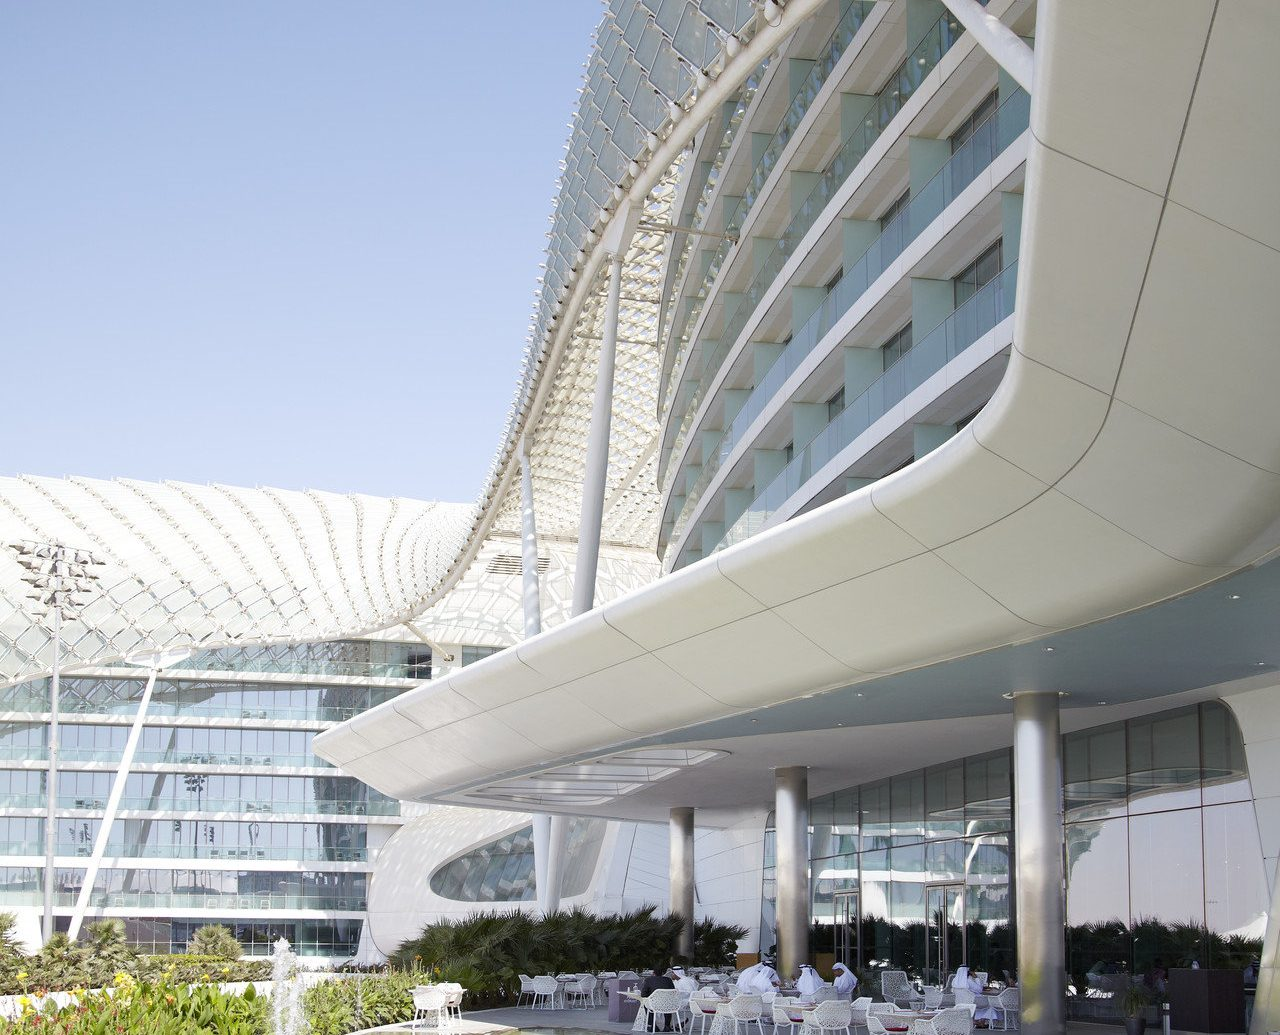 Hotels sky outdoor building structure Architecture sport venue headquarters skyway stadium facade convention center day